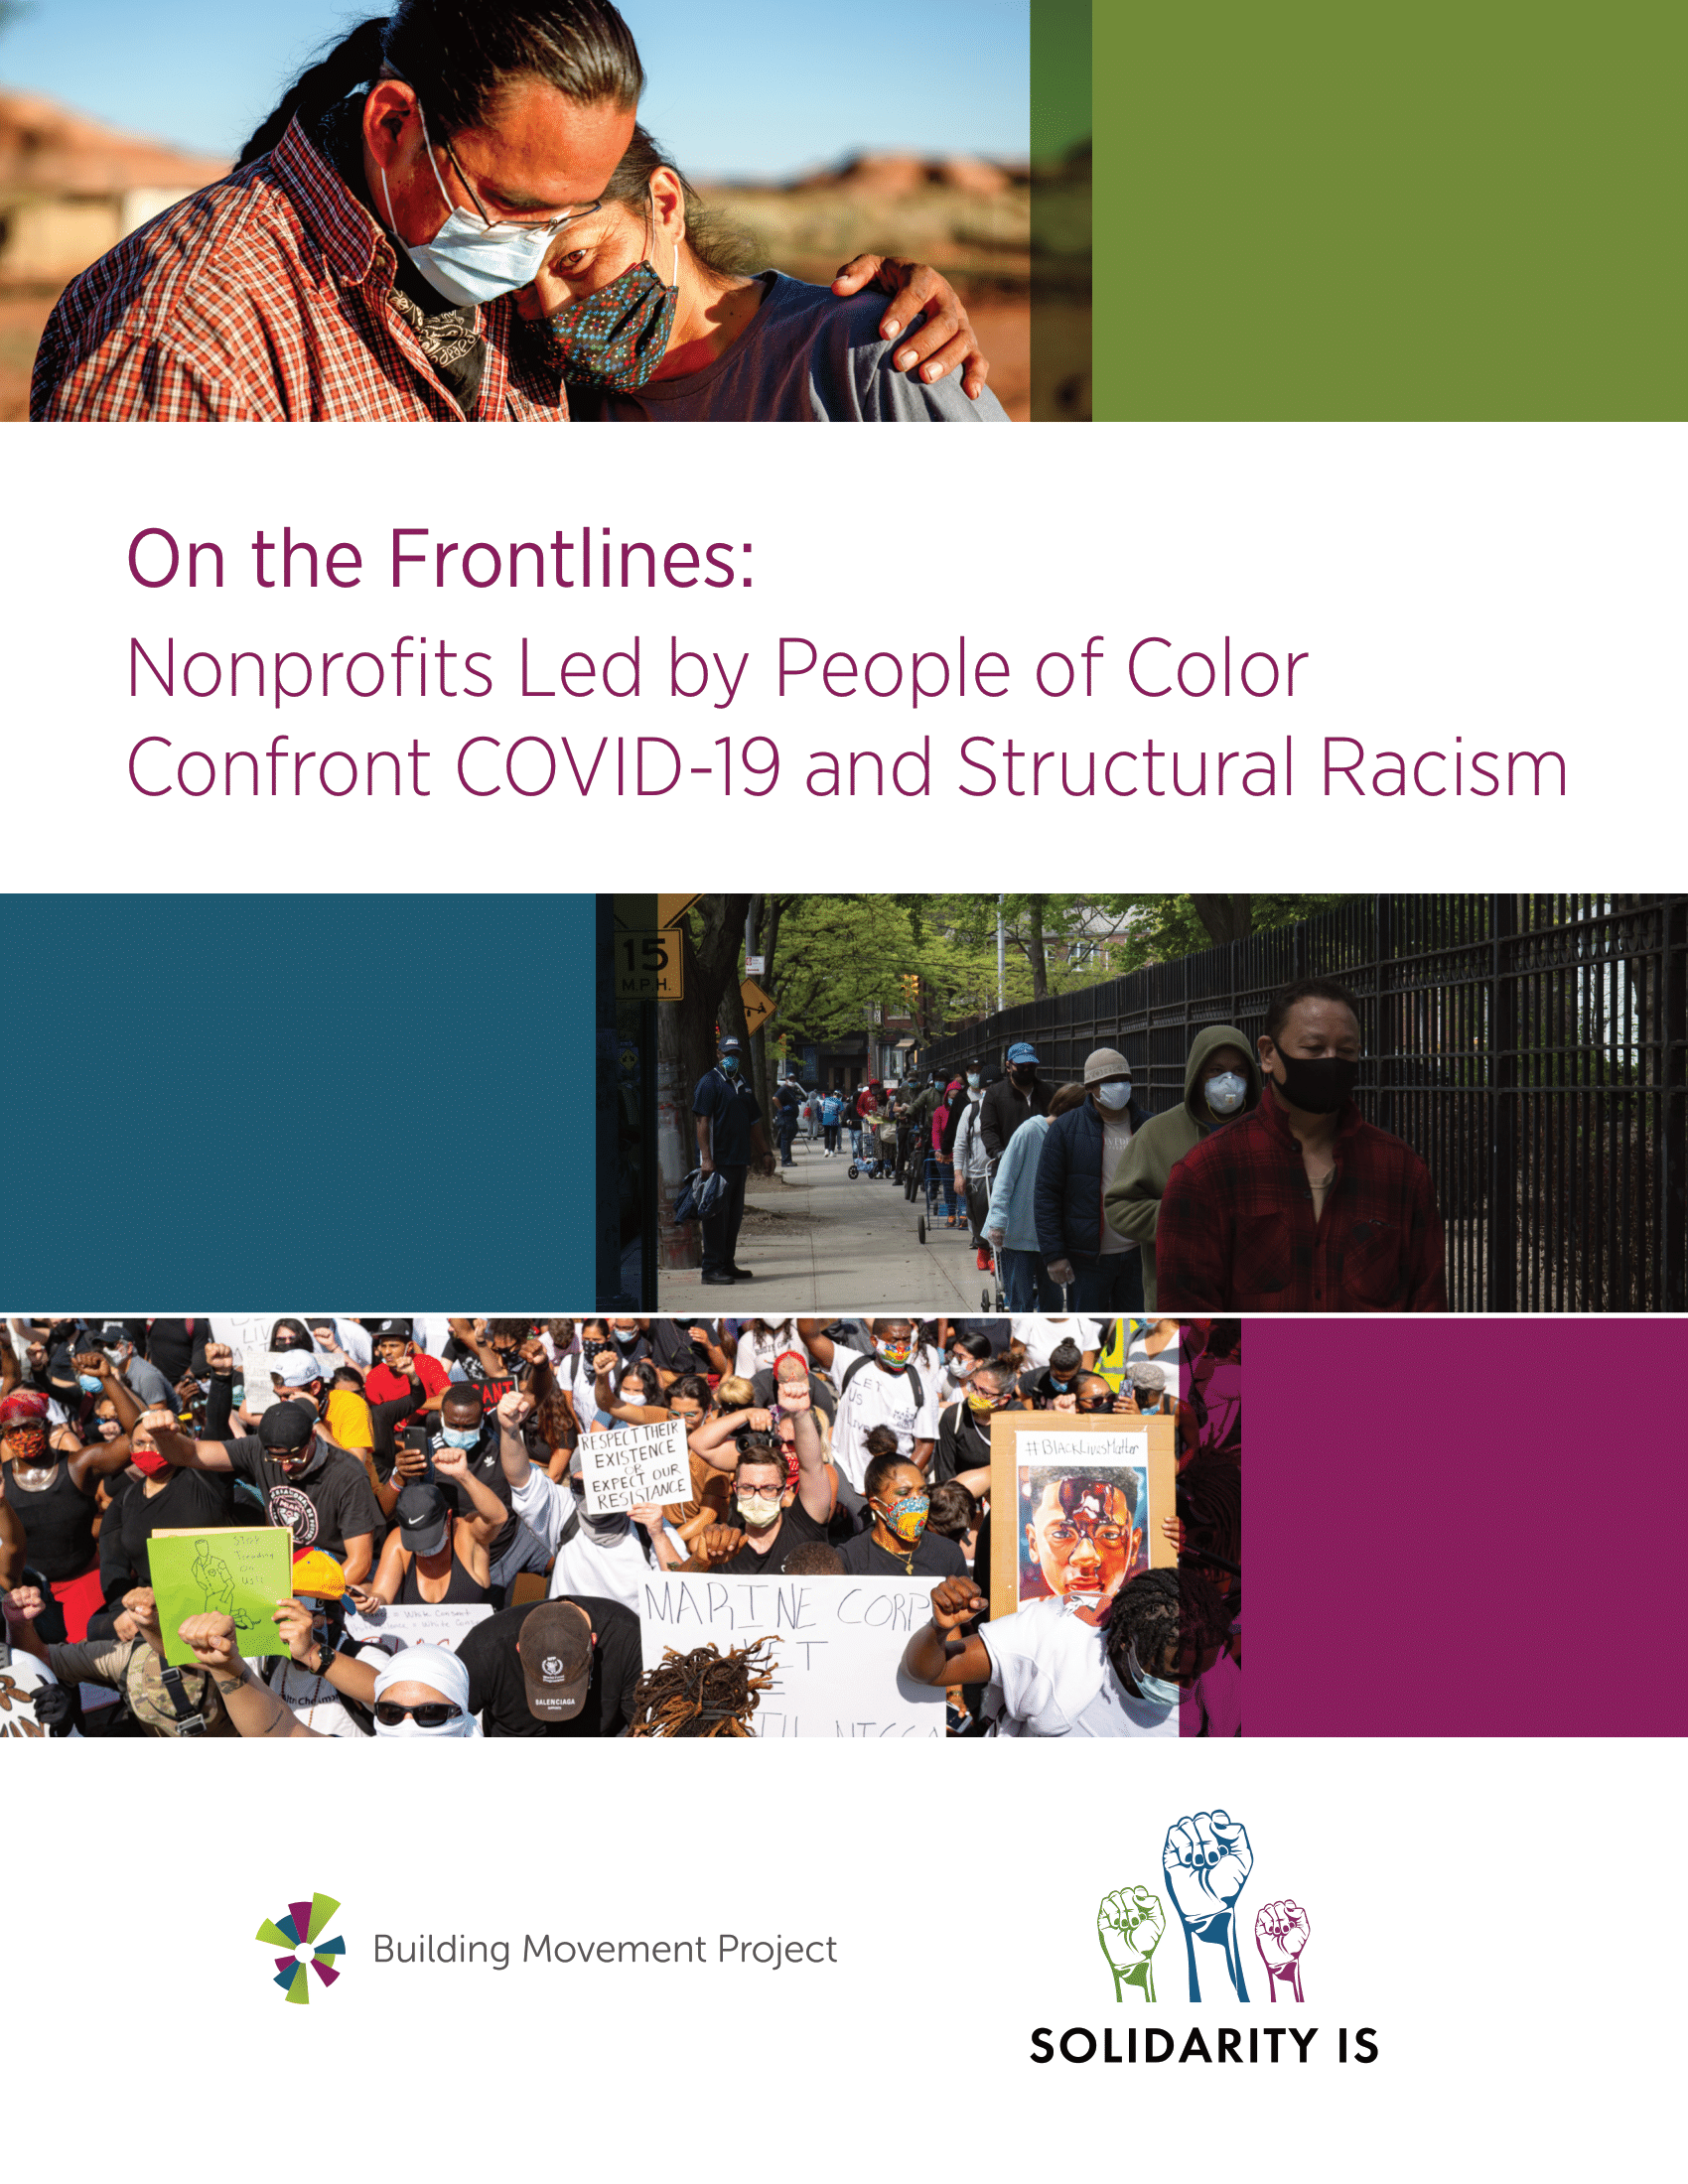 On the Frontlines: Nonprofits Led by People of Color Confront COVID-19 and Structural Racism